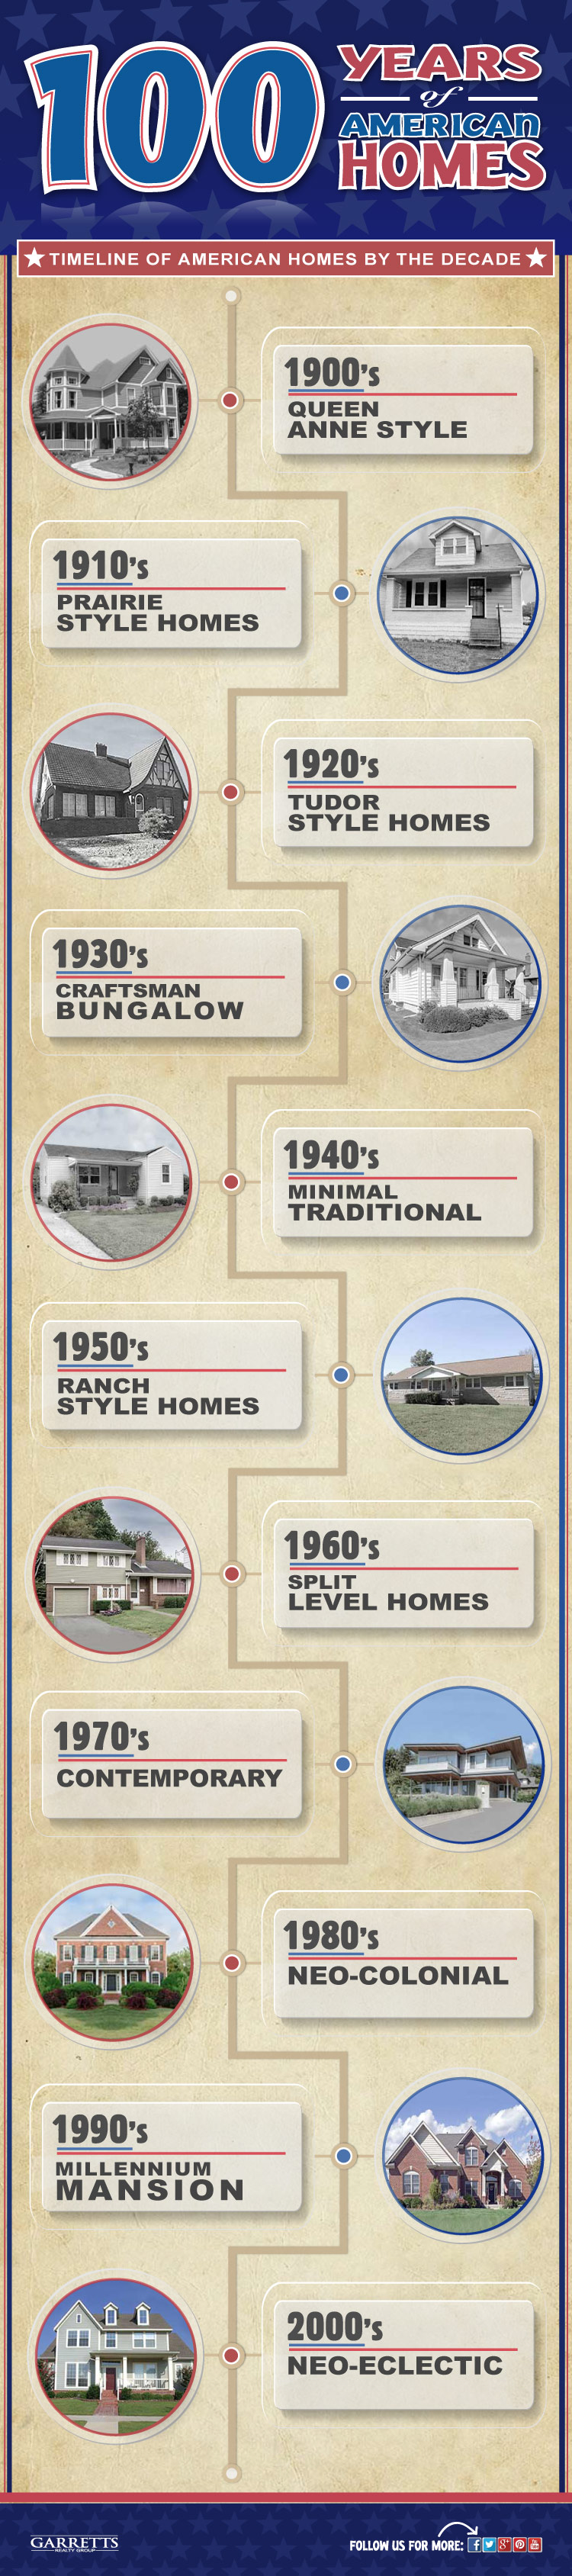 Evolution of Homes in America